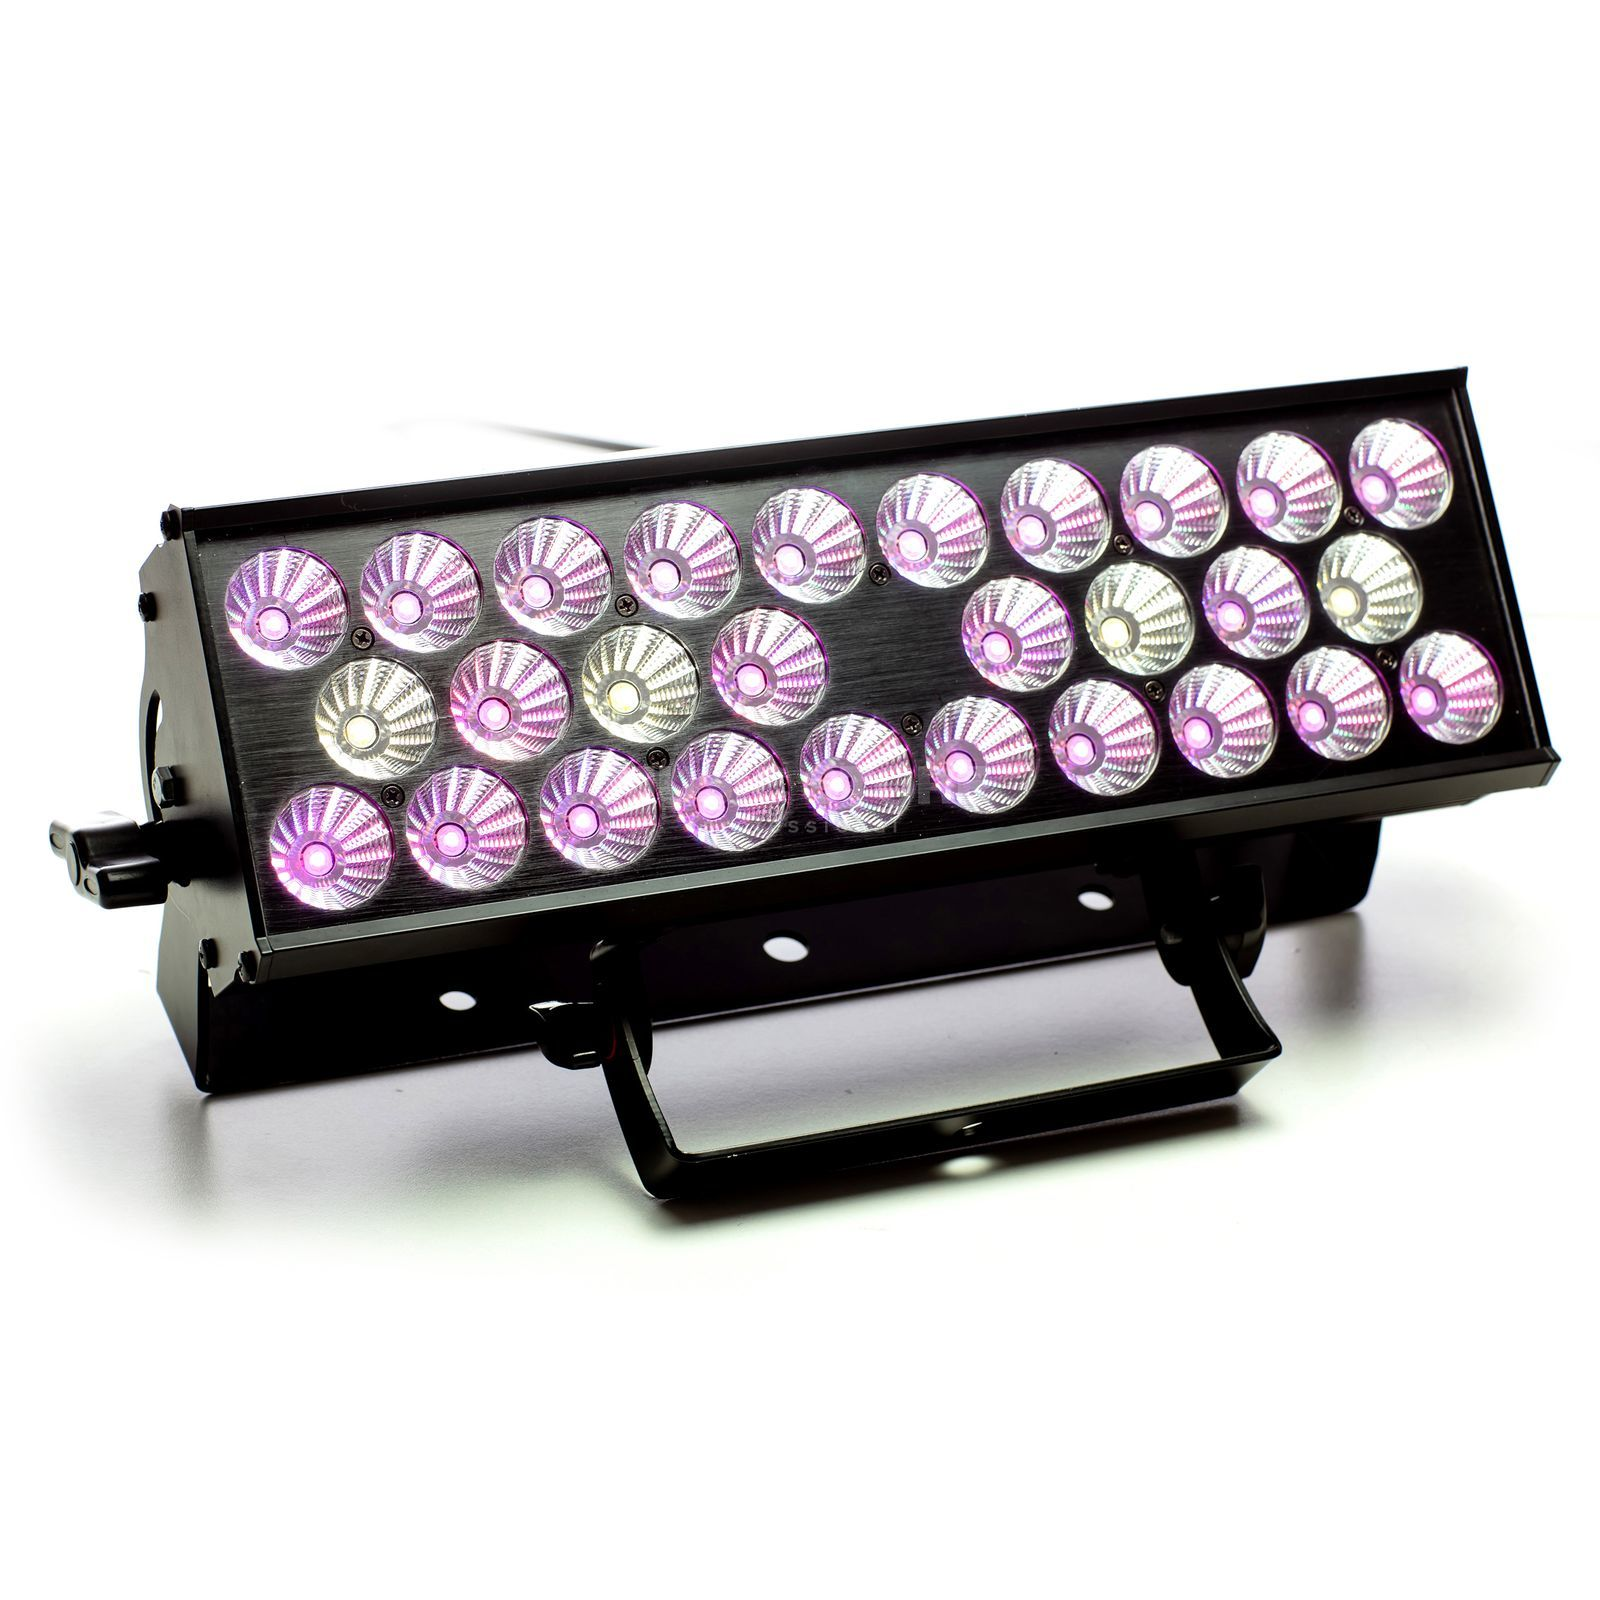 Ignition LED Powerbatten RGB+CW 28x3W  Produktbild